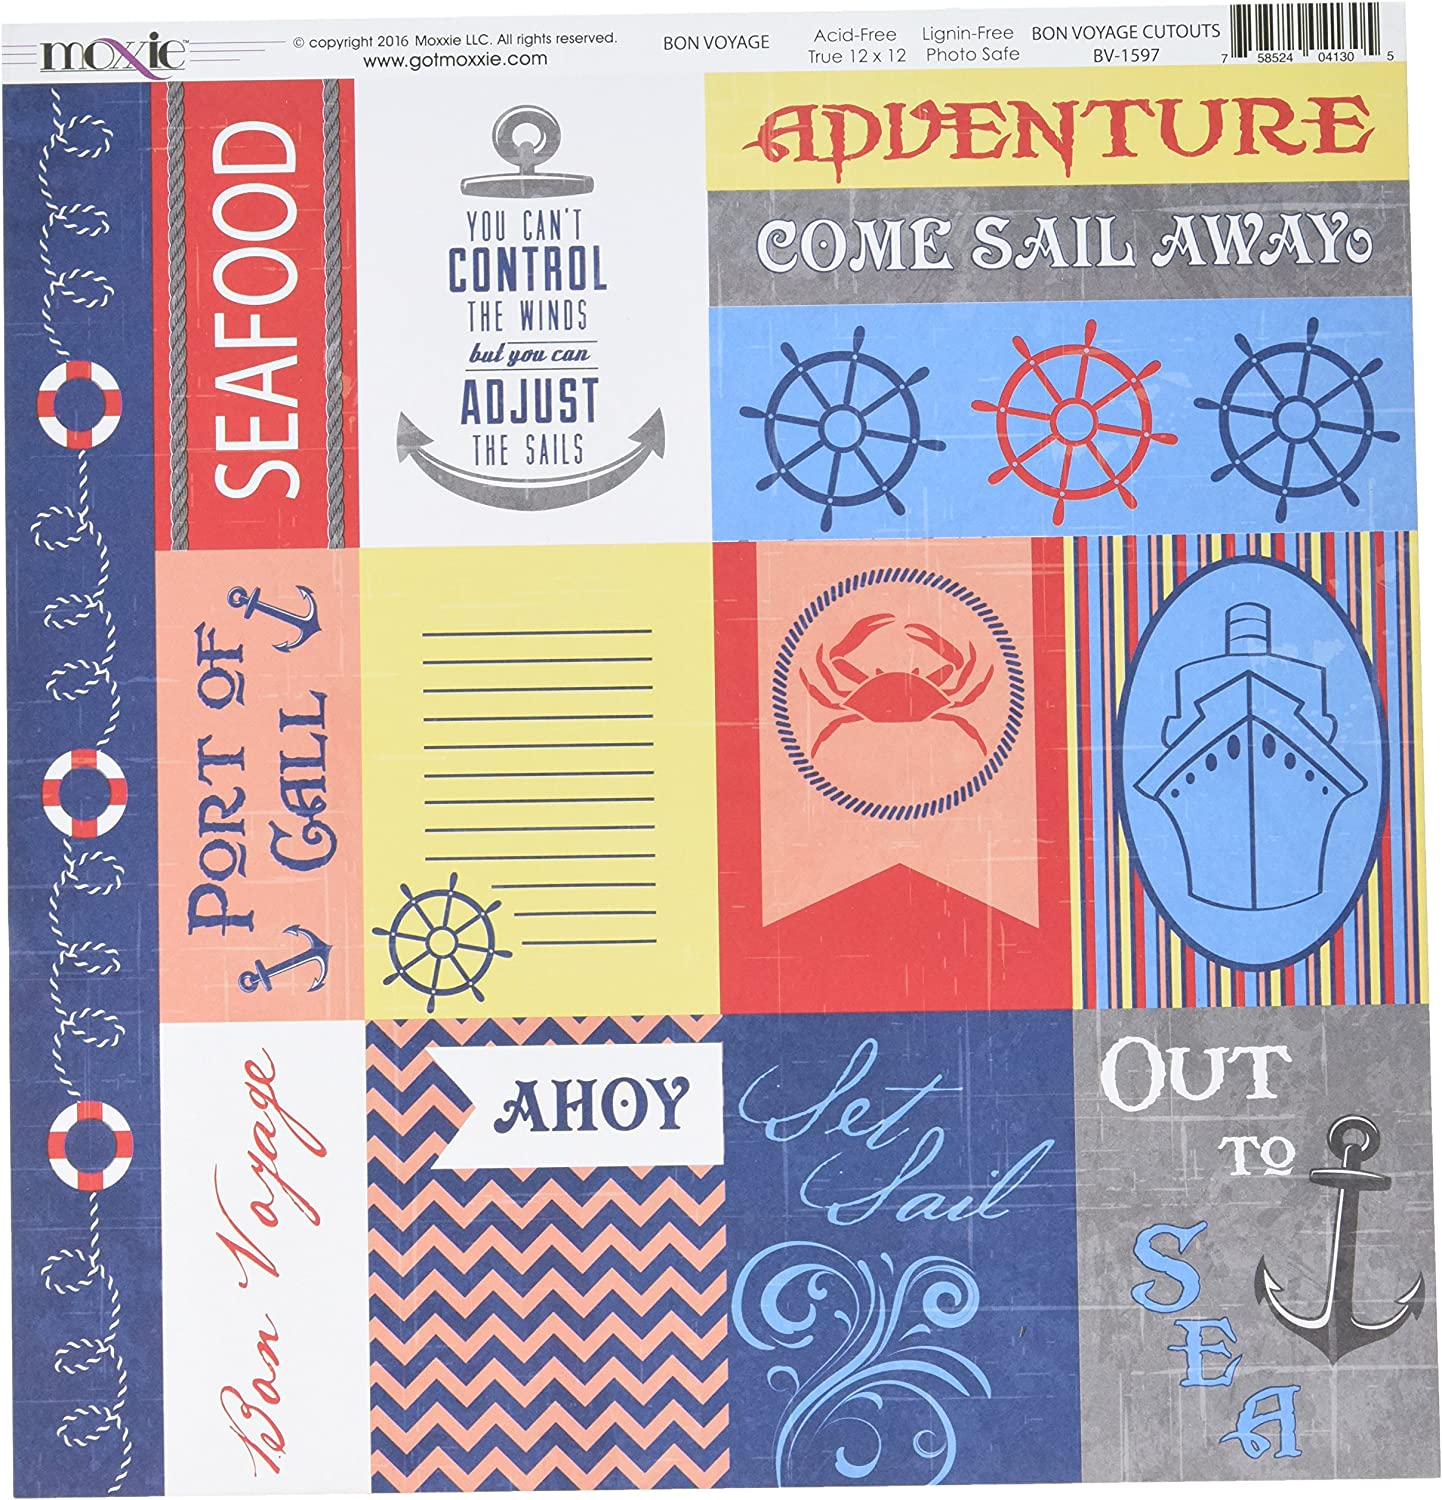 Super sale Moxxie BV-1597 25 Sheet Bon Voyage Cutouts All stores are sold Double-Sided Cardstoc